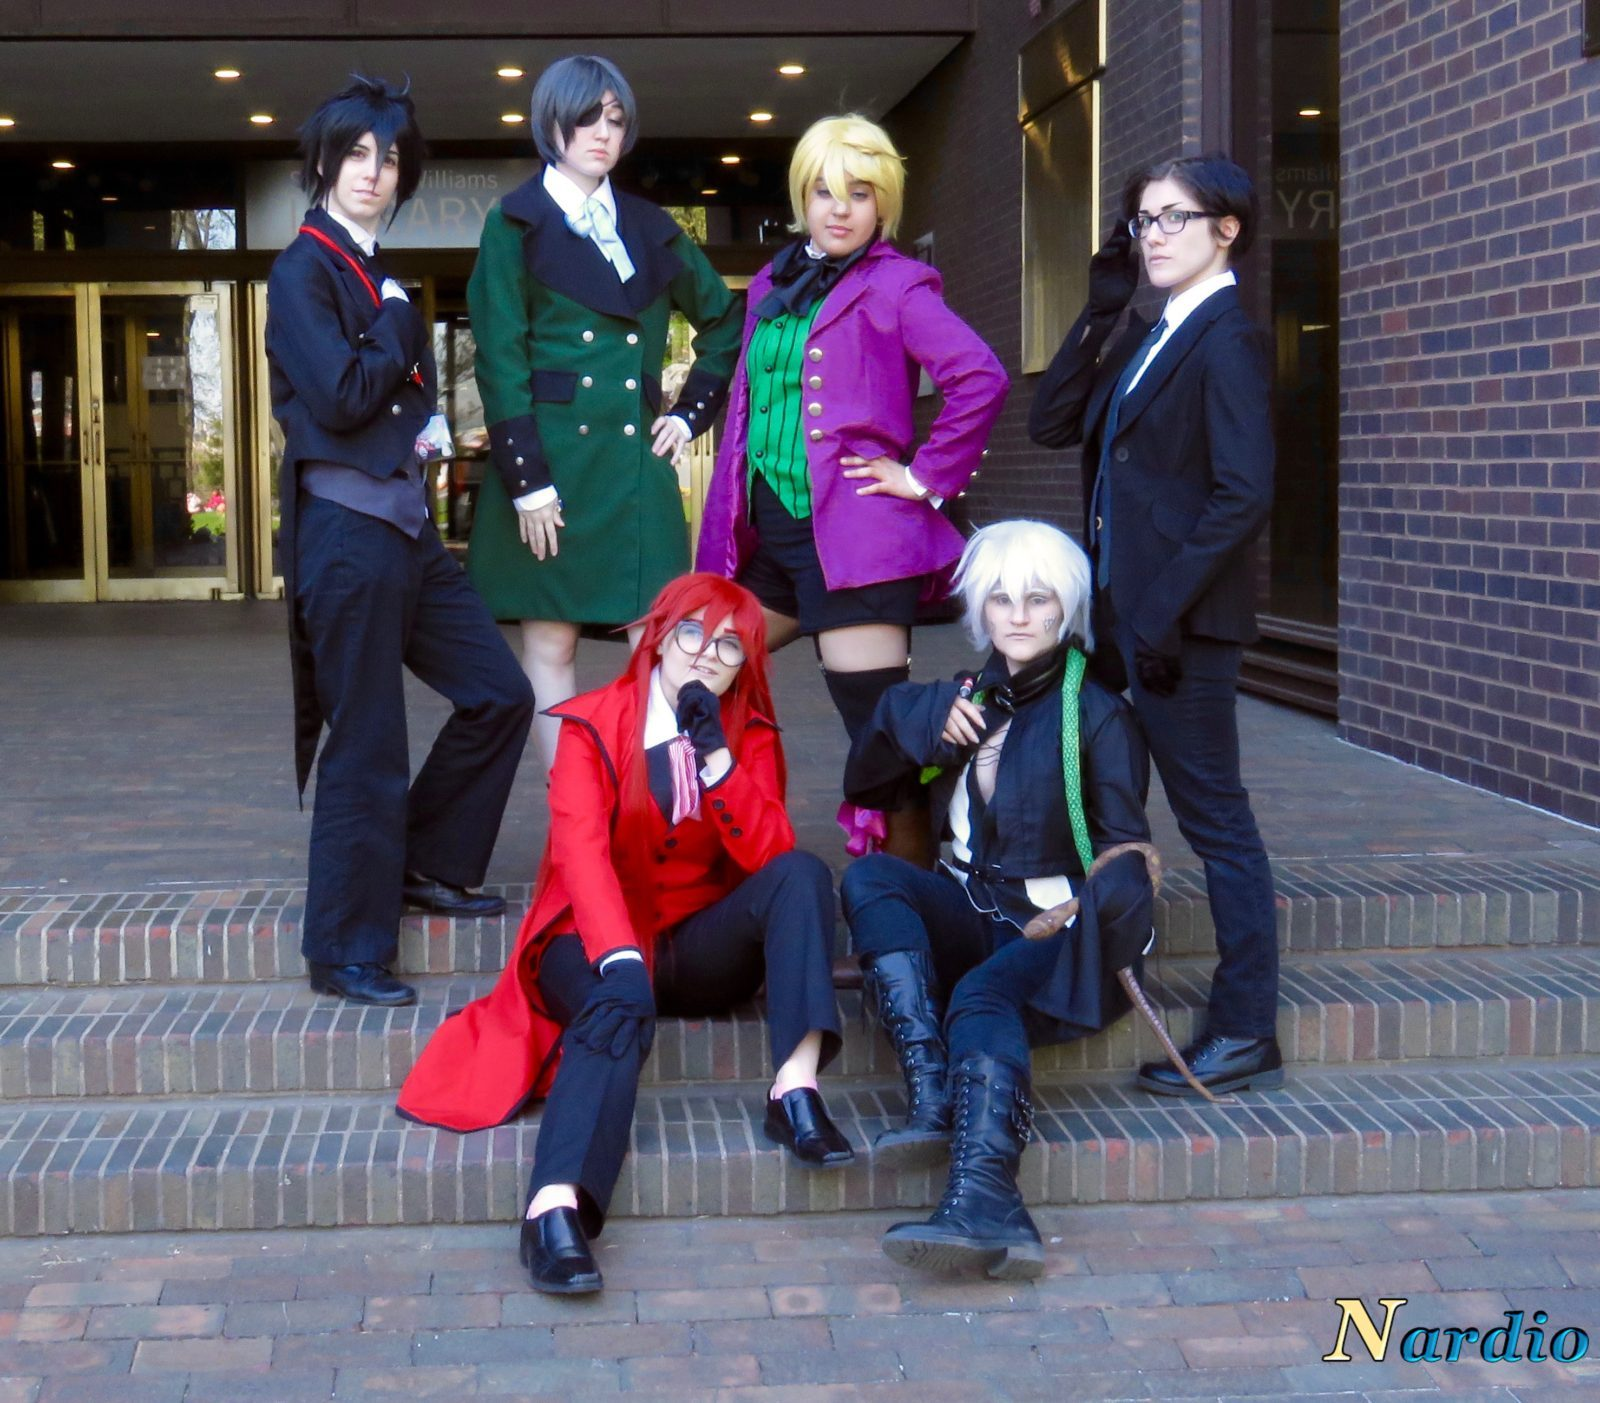 Castle Point Anime Convention Black Butler group 003 Main Group Shot